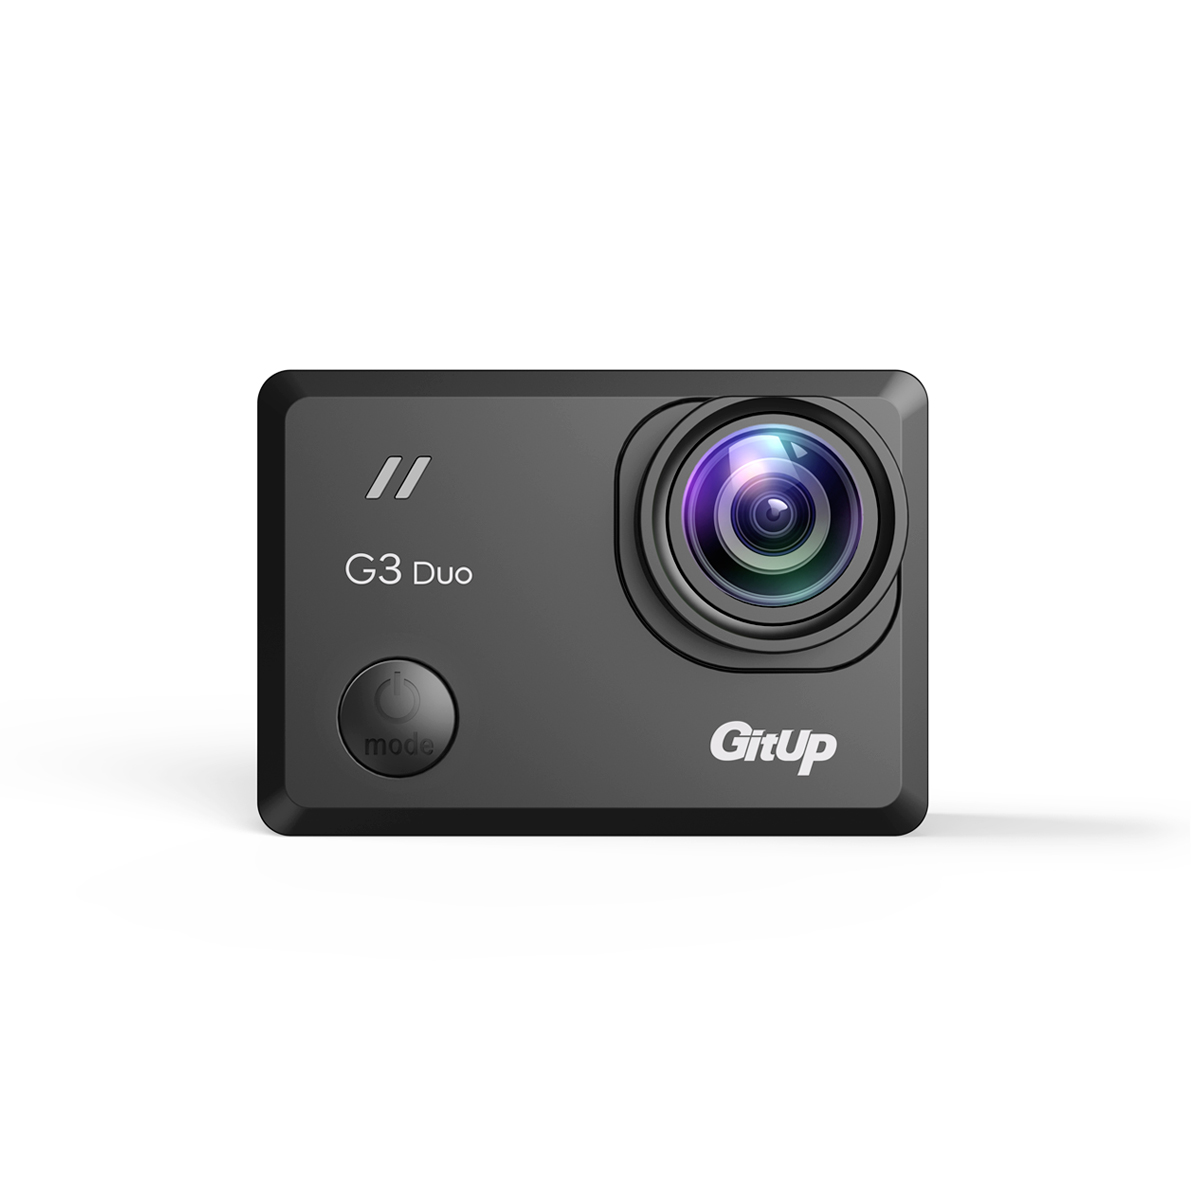 2018 New Gitup G3 Duo 2K 12MP 2160P Sport Action Camera 2.0 Touch LCD Screen Gyro 170 Degree Portable Cam Optional GPS Slave gitup gps module slave camera combination for g3 duo camera